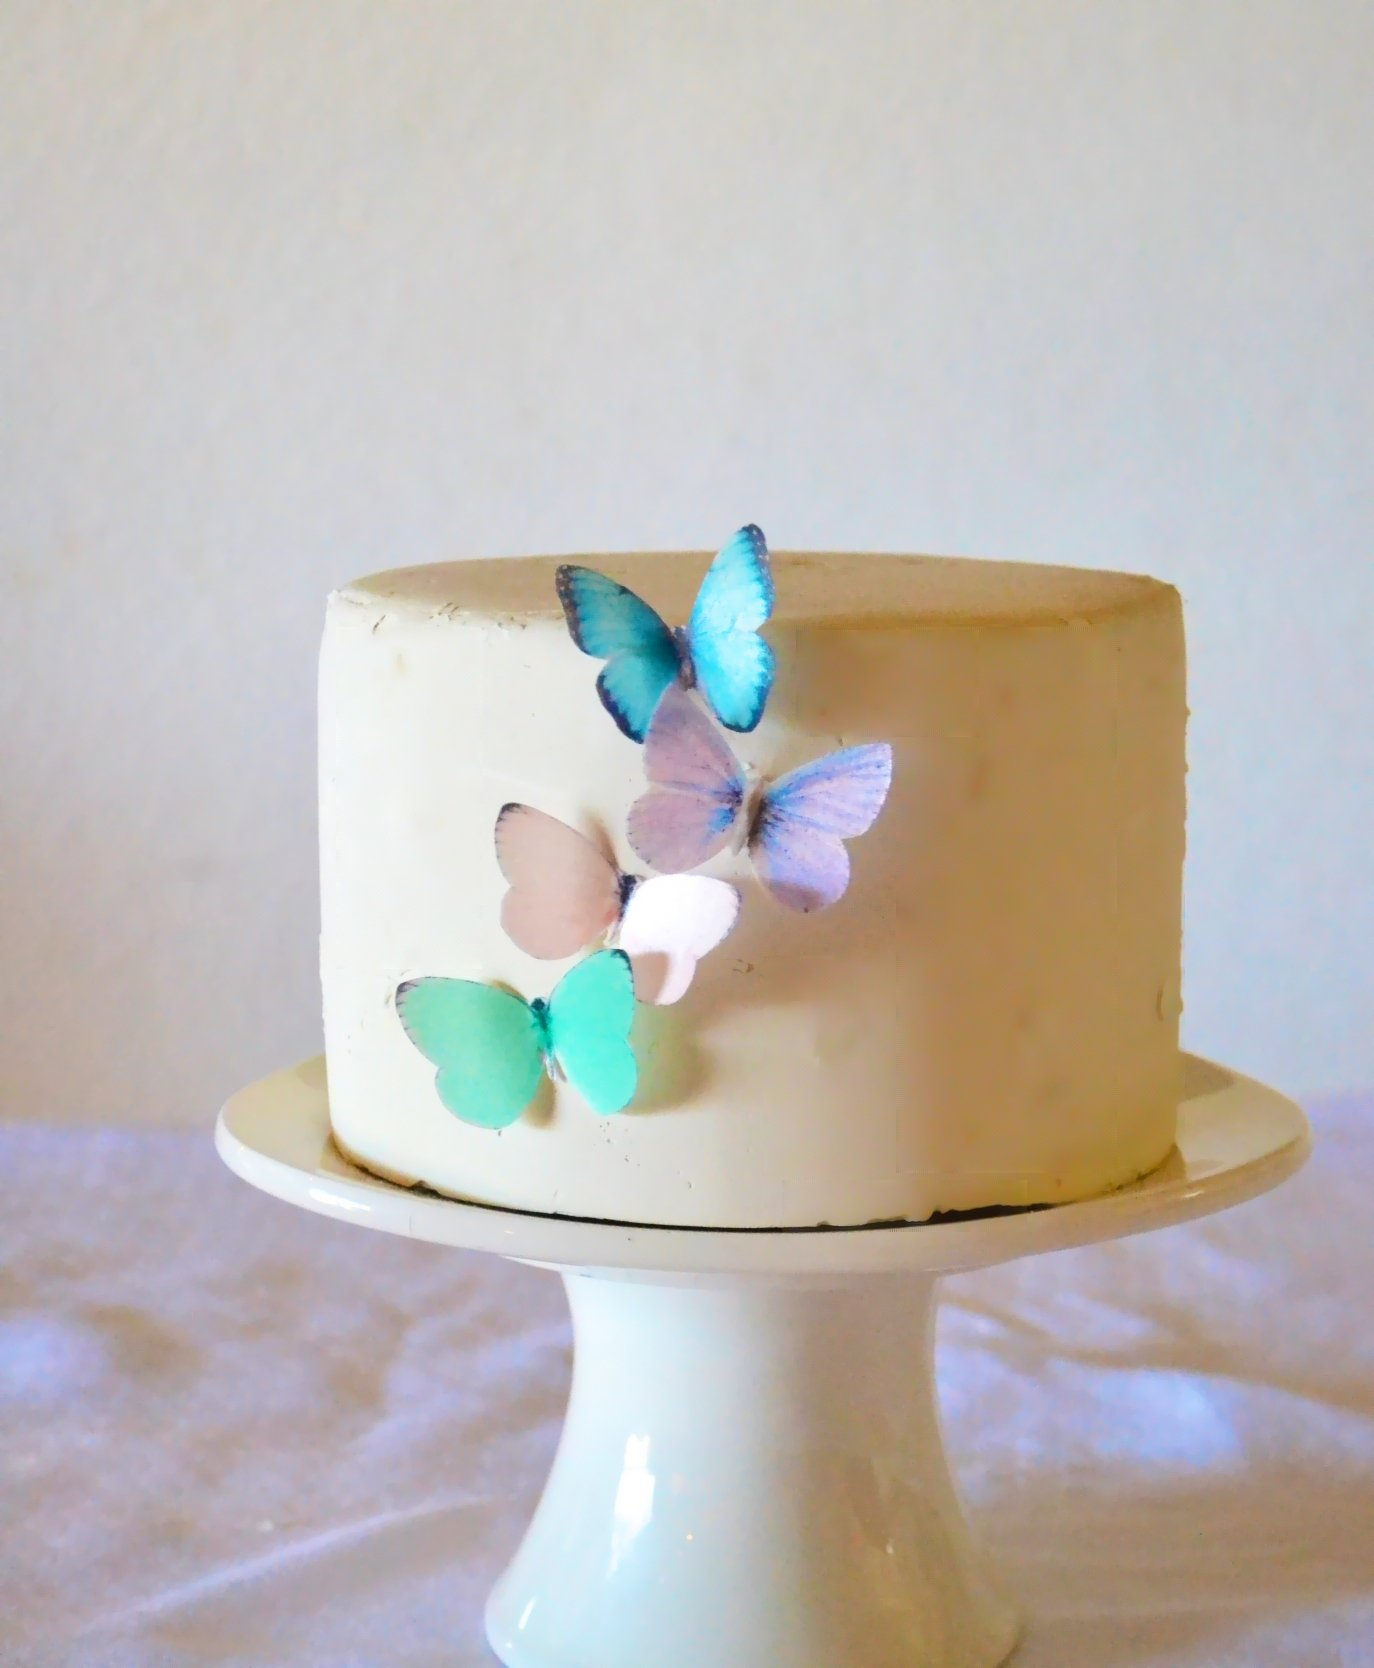 Edible Butterflies © - Small Assorted Pastel Set of 24 - Cake and Cupcake Toppers, Decoration by Sugar Robot Inc. (Image #1)